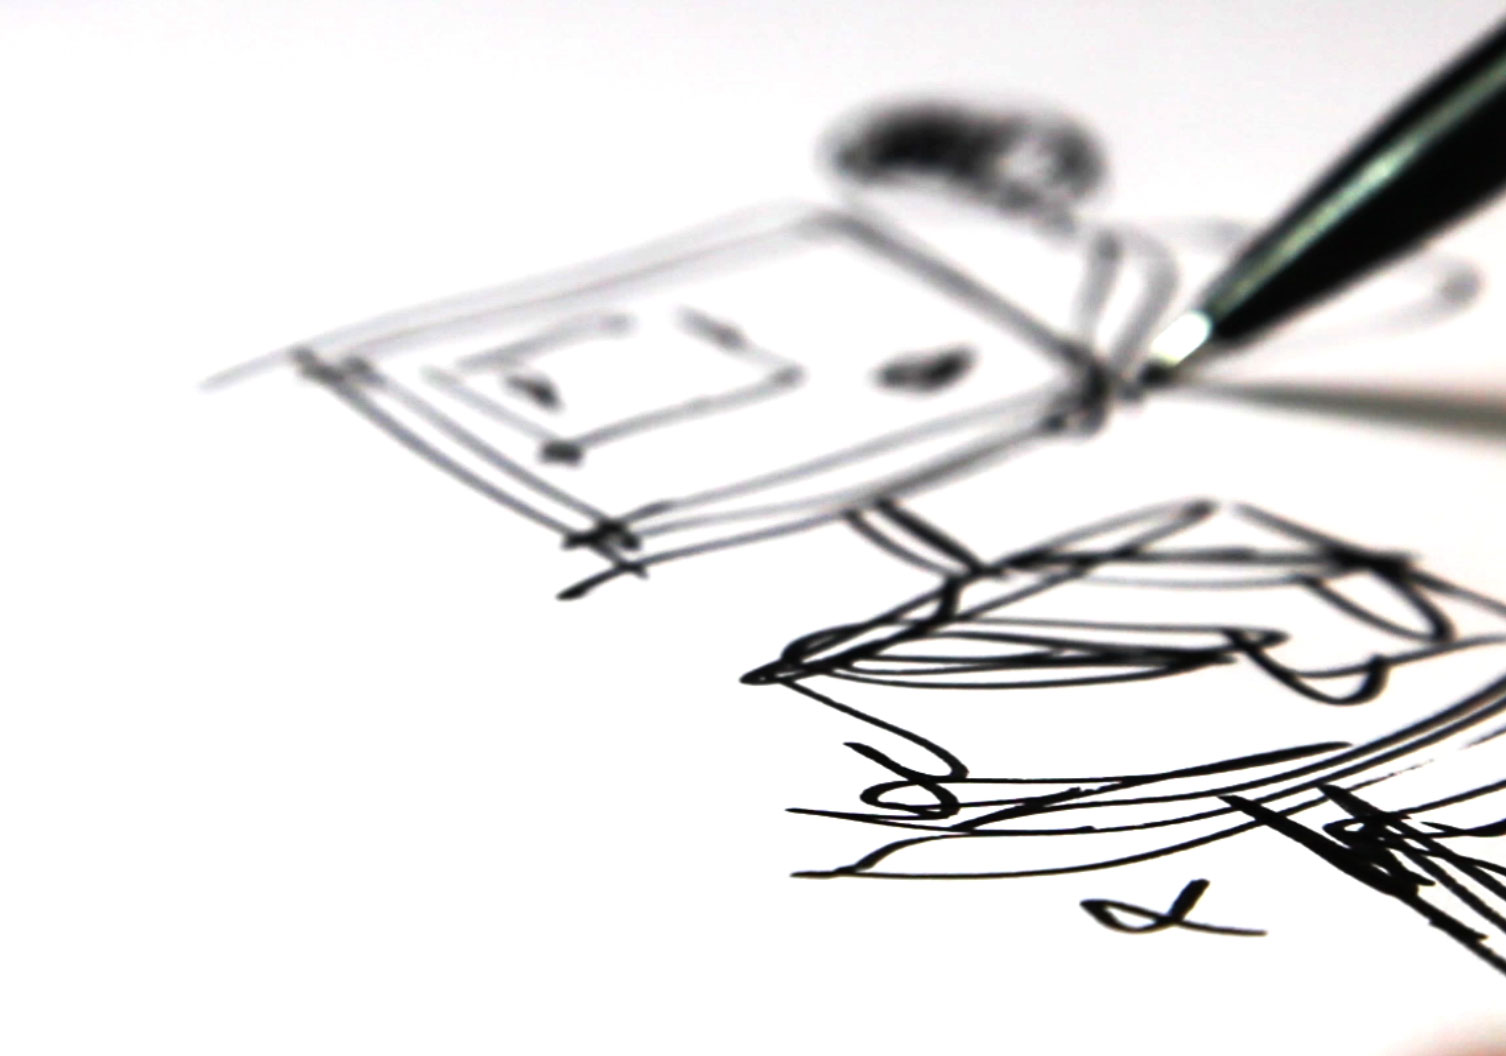 Project image 2 for Timelapse Sketch Video, Confidential Client